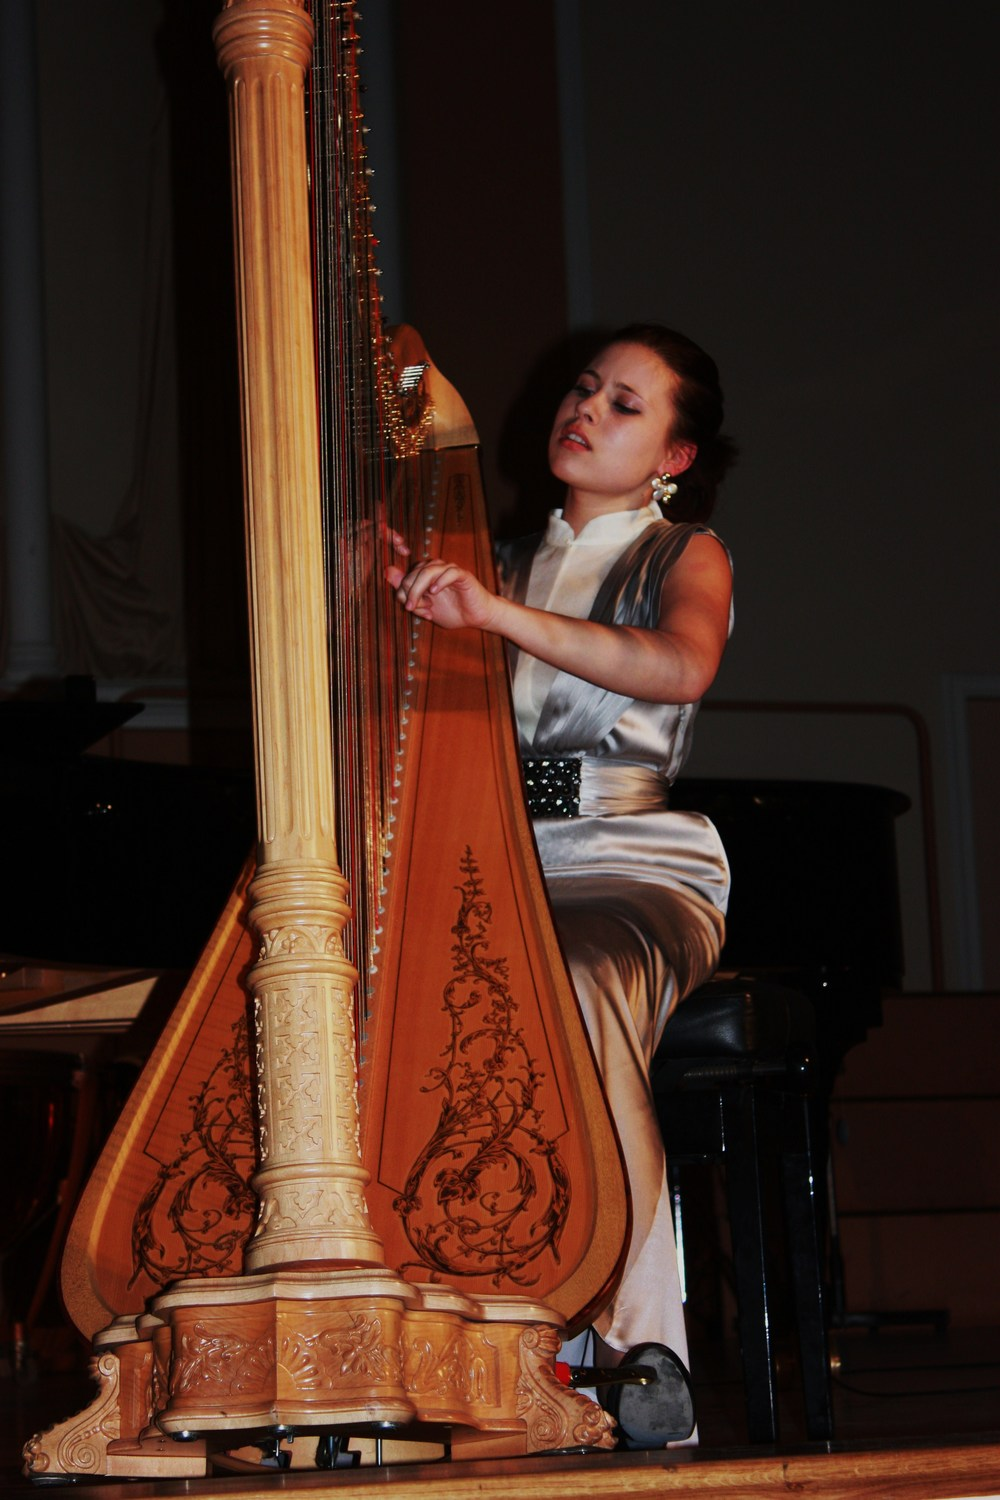 Valeria Kurbatova - Solo harp, available for bookings.